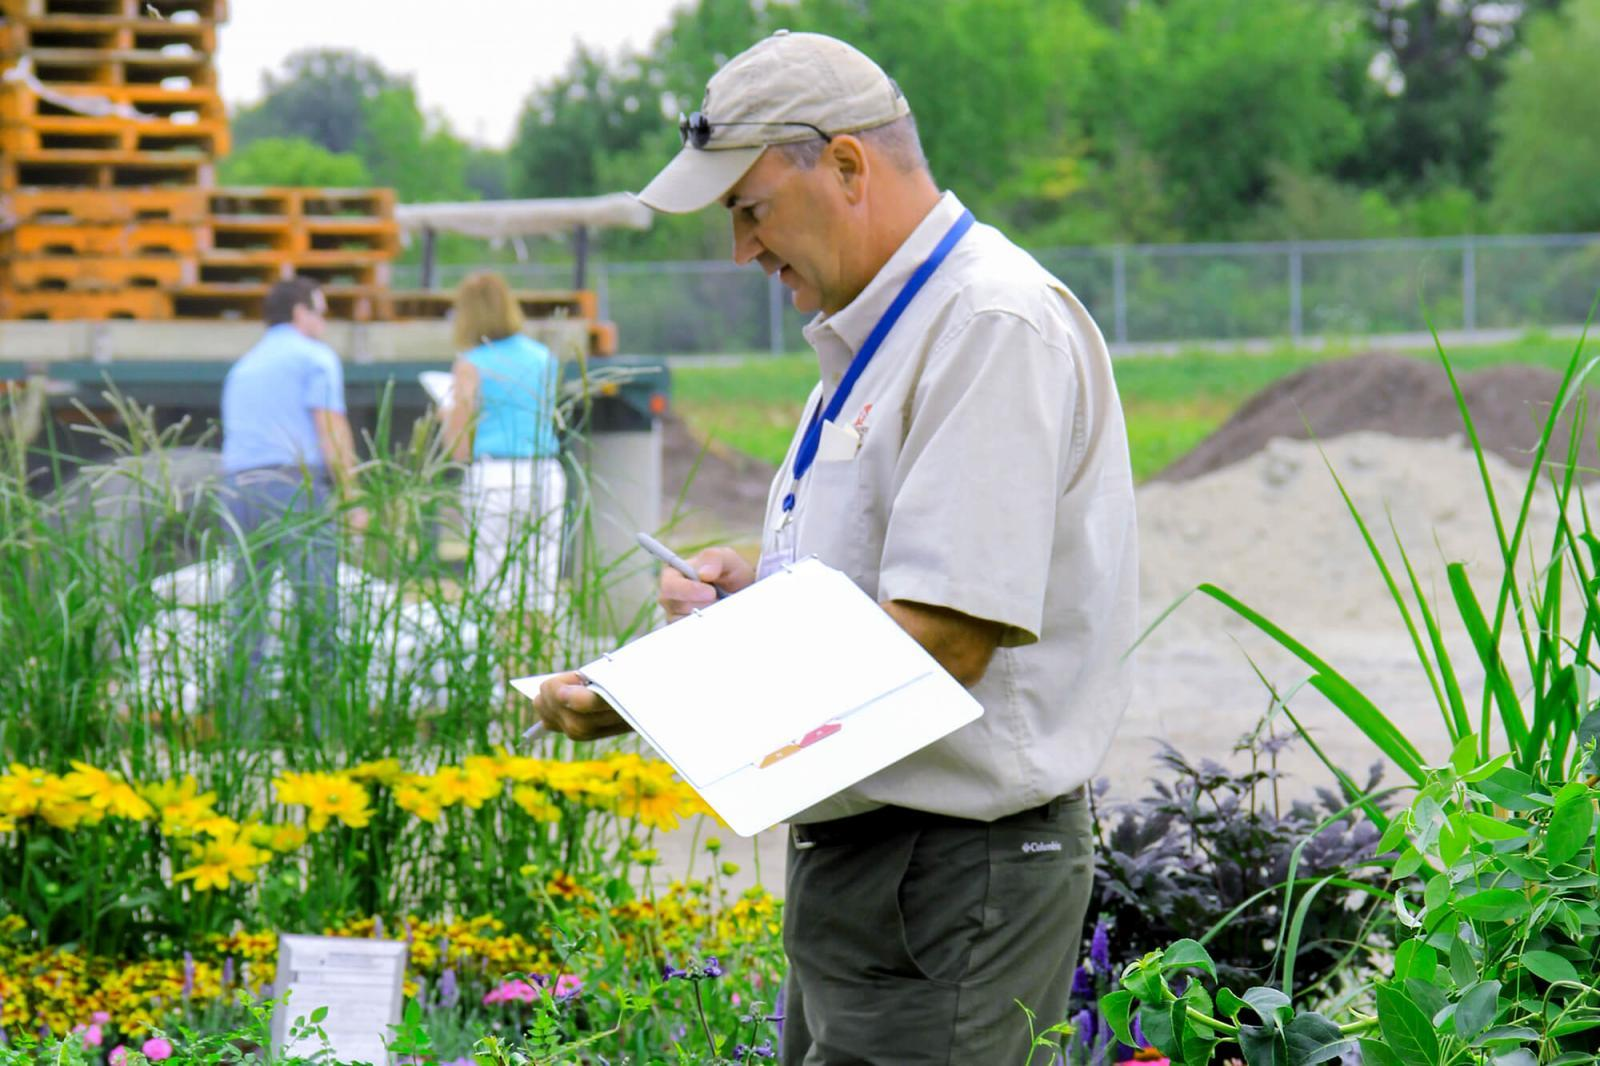 Auction displays the pride of growers